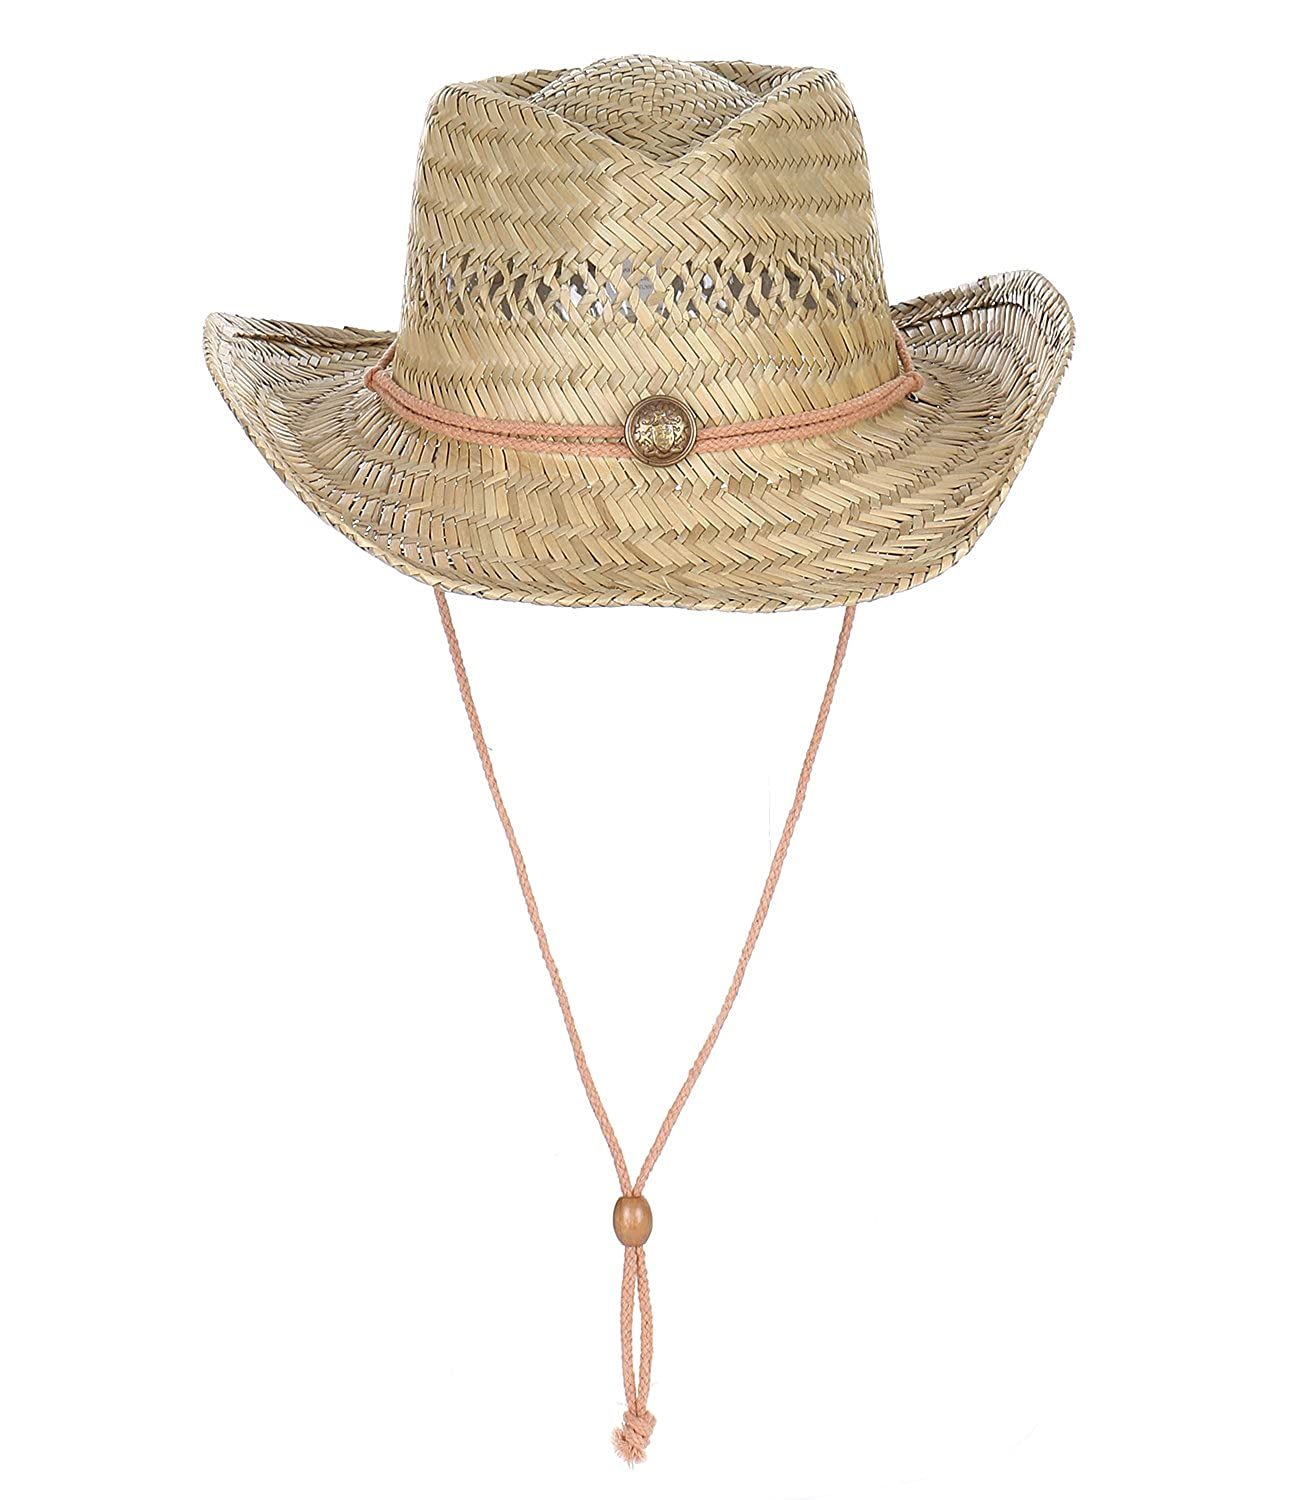 2040USA Classic Summer Protective Lifeguard Natural Straw Beach Sun Hat